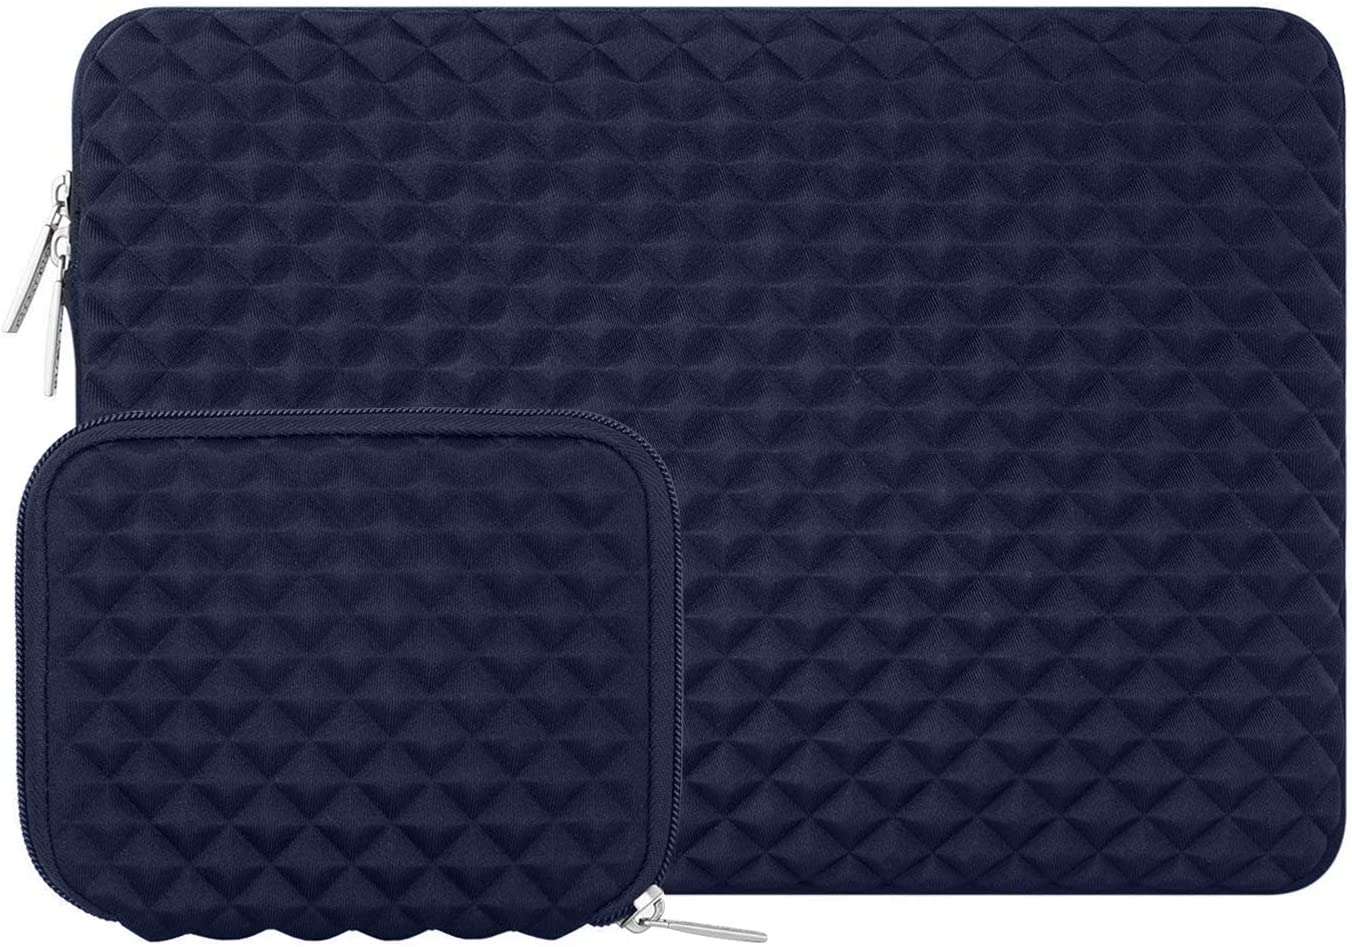 MOSISO Laptop Sleeve Compatible with 2019 MacBook Pro 16 inch with Touch Bar A2141, 15-15.6 inch MacBook Pro Retina 2012-2015, Notebook, Diamond Foam Neoprene Bag Cover with Small Case, Navy Blue